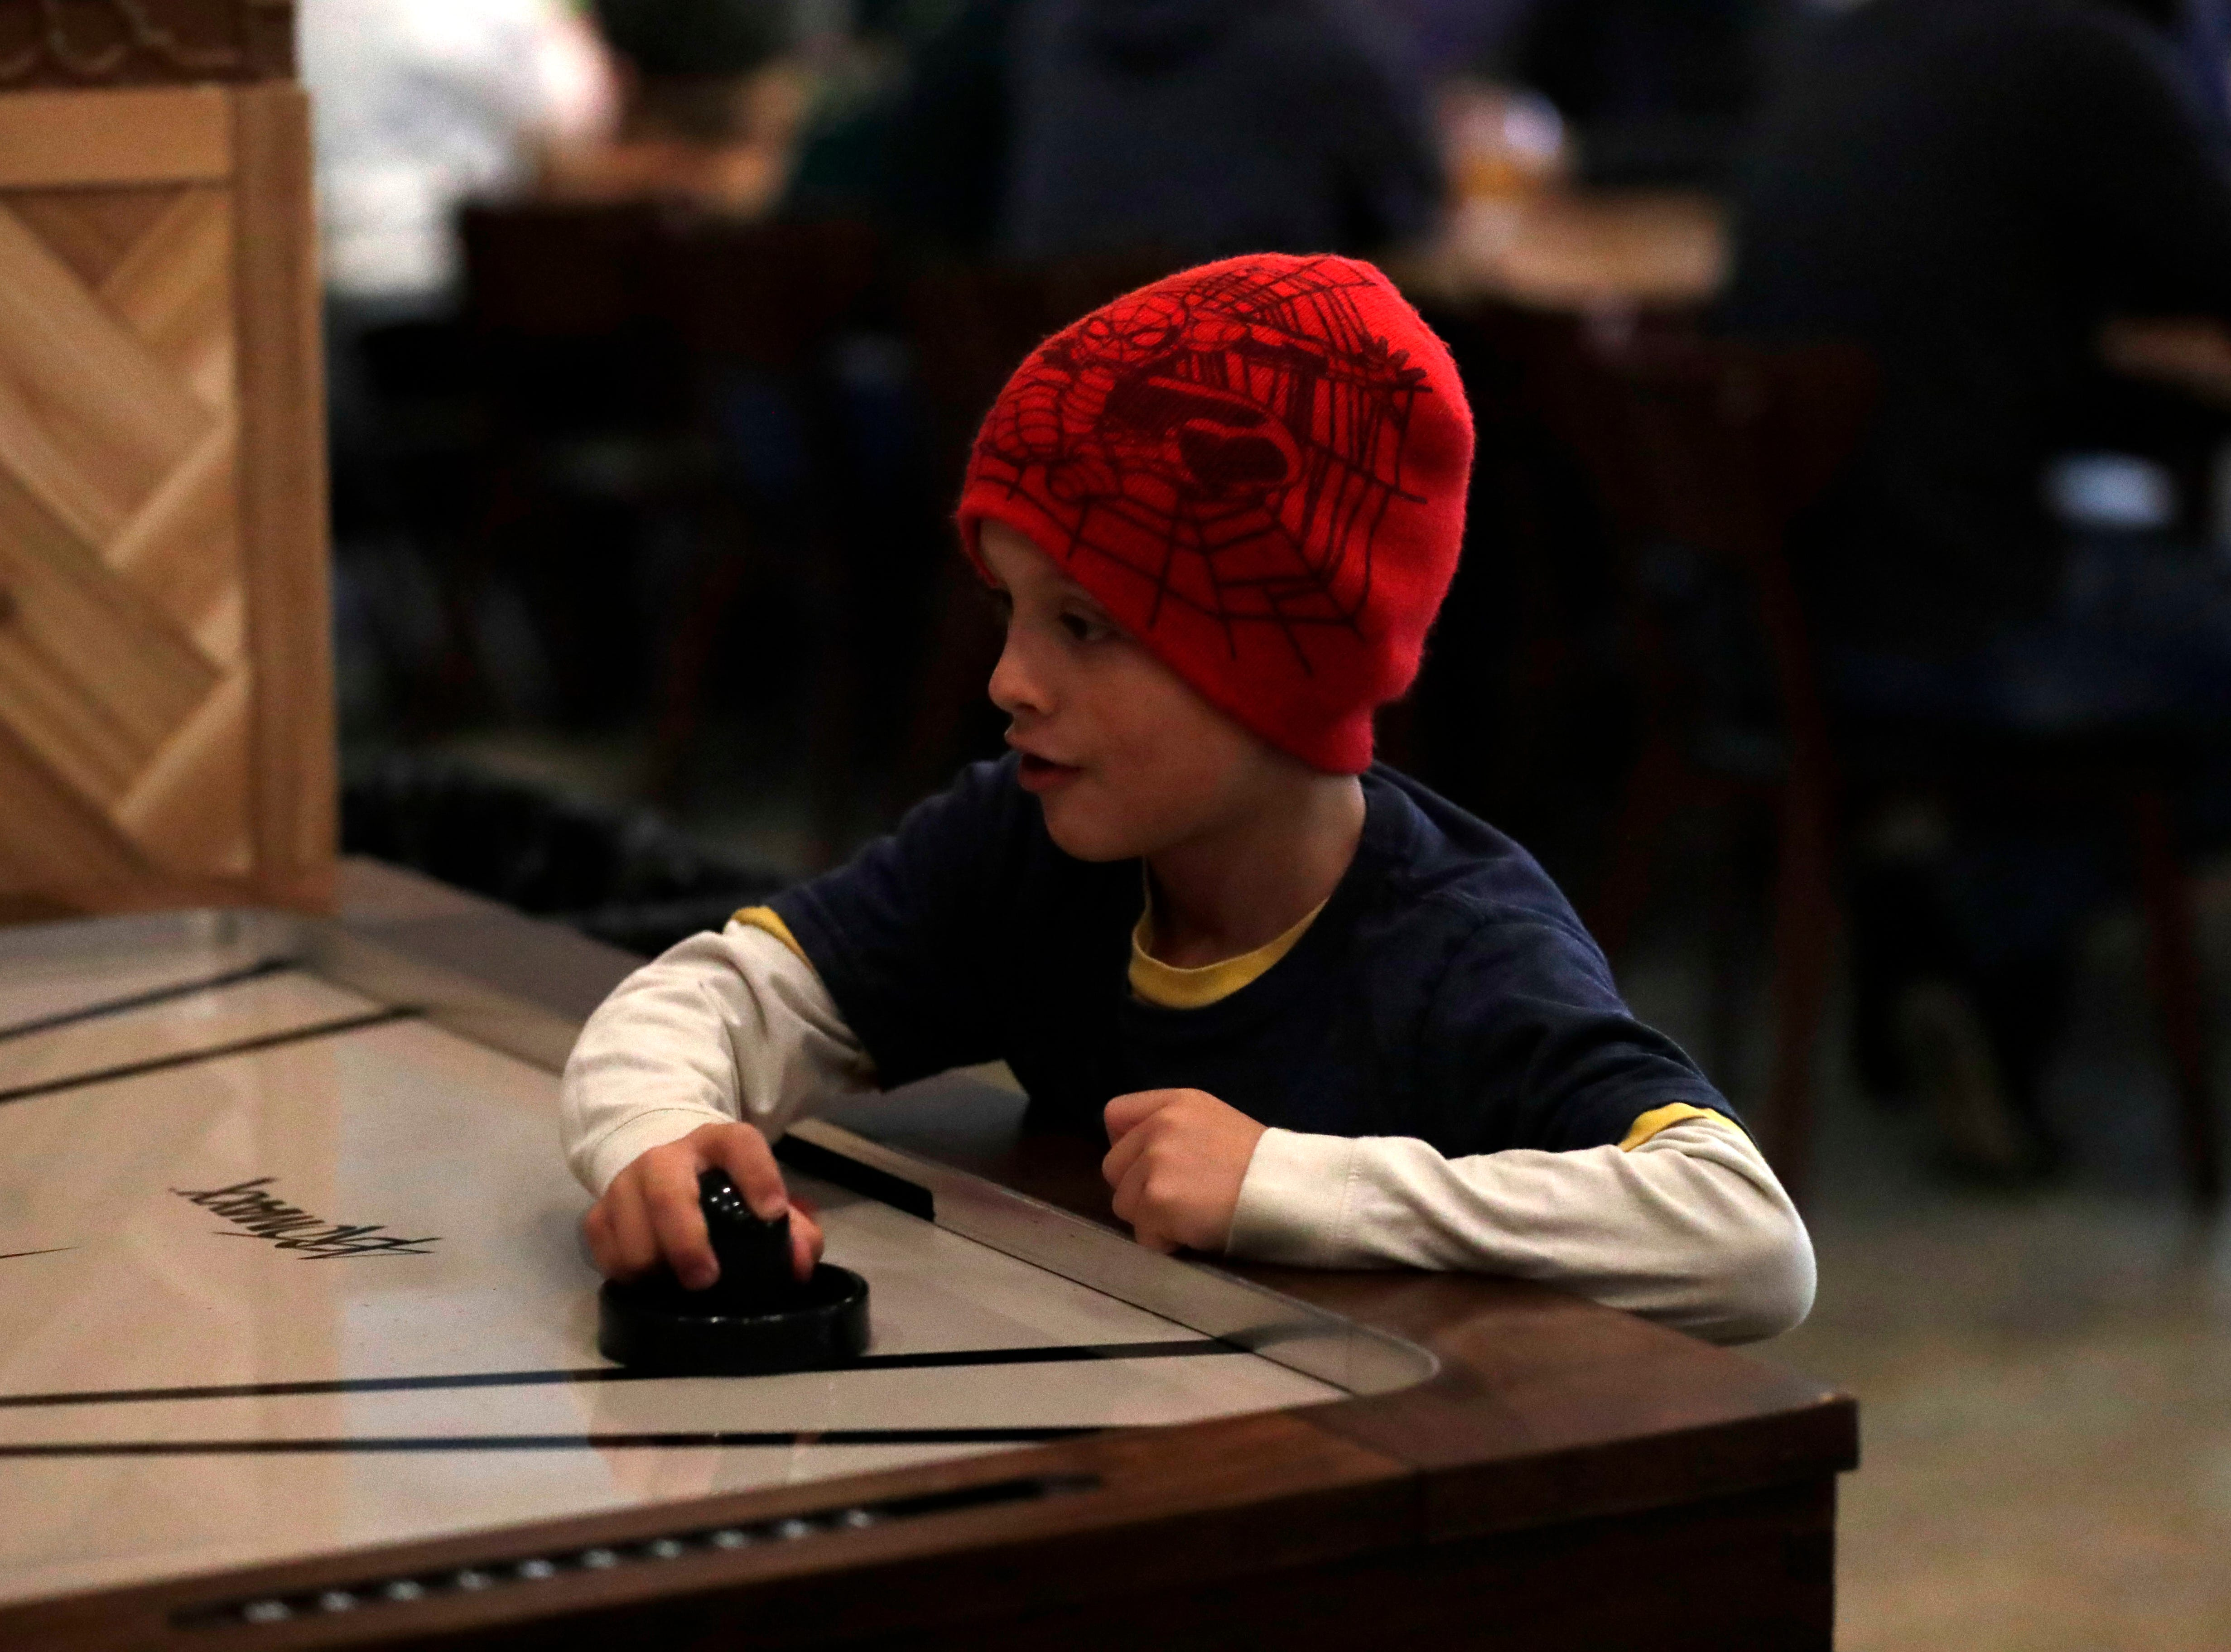 Marino Corradi, 7, plays air hockey at the soft opening of the new Proof Brewery, Friday, Feb. 1, 2019.